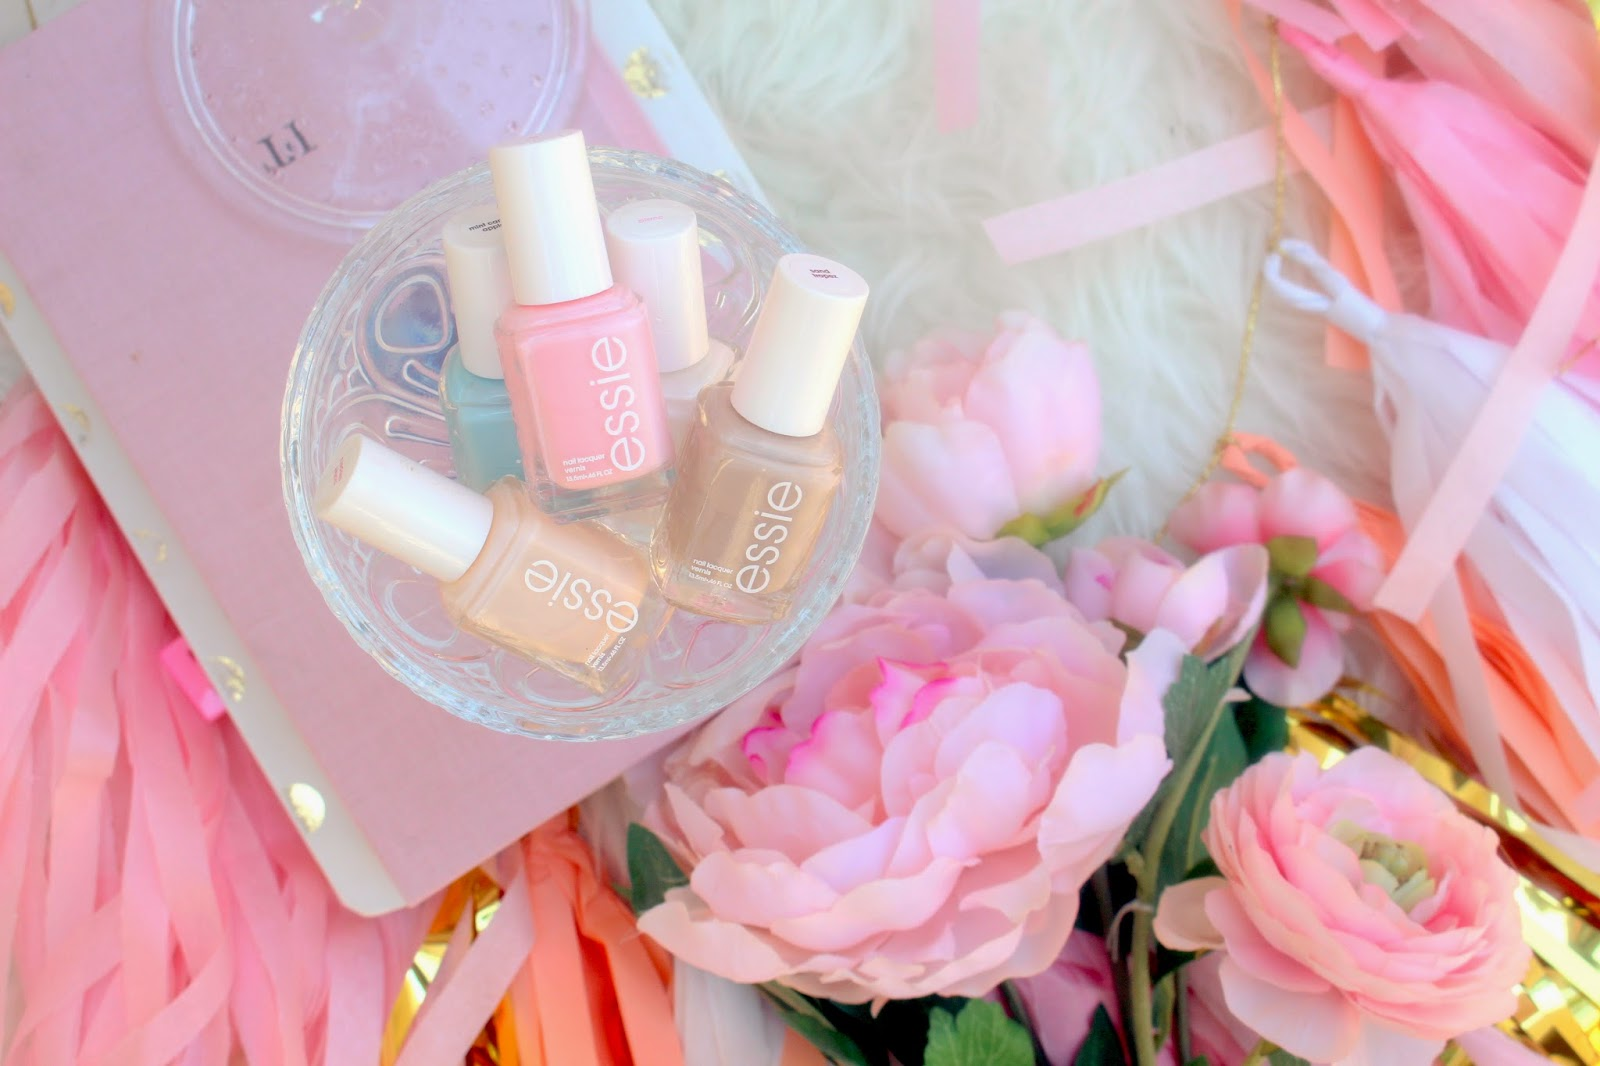 Cool Nail Polish And Wudu Thick Removing Gel Nail Polish Shaped White Nail Polish Ideas Nail Art Using Water Young Light Pink Opaque Nail Polish WhiteOpi Nail Polish Blue Top Five Favorite Essie Polishes   Money Can Buy Lipstick